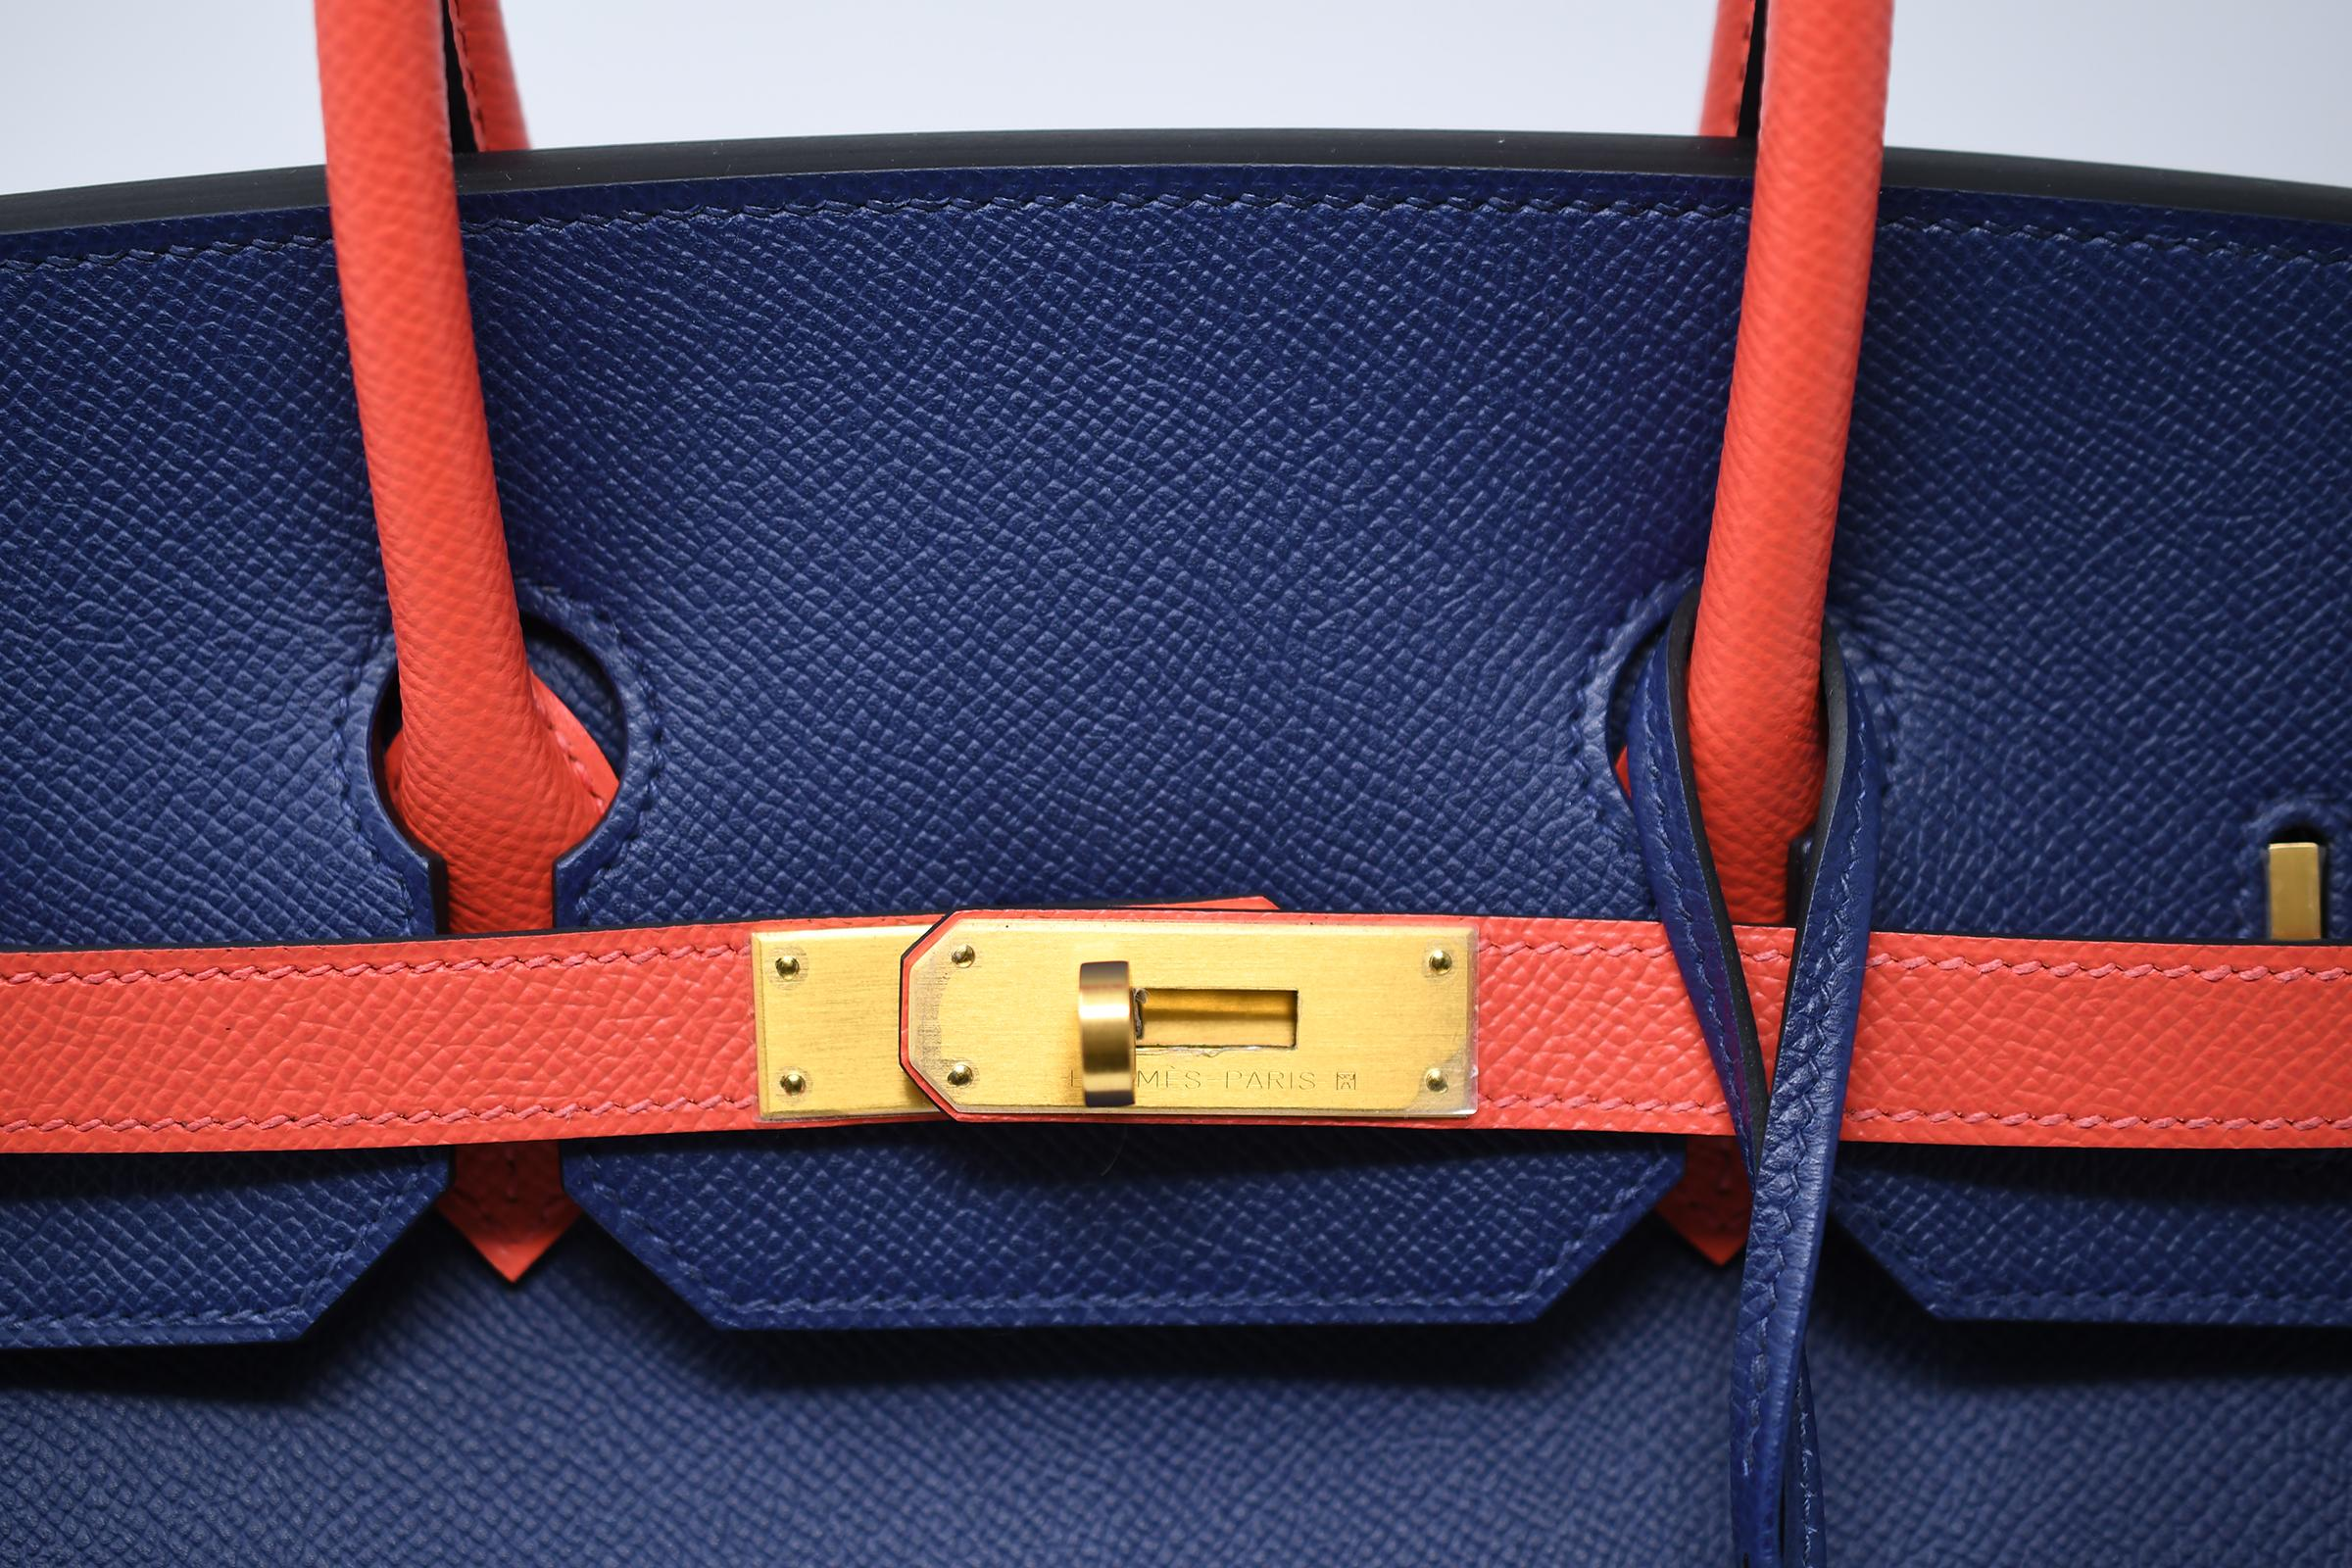 8a397bc7f5ba Hermes Birkin Bag 35cm Bicolor Navy with Salmon with Gold Hardware For Sale  at 1stdibs